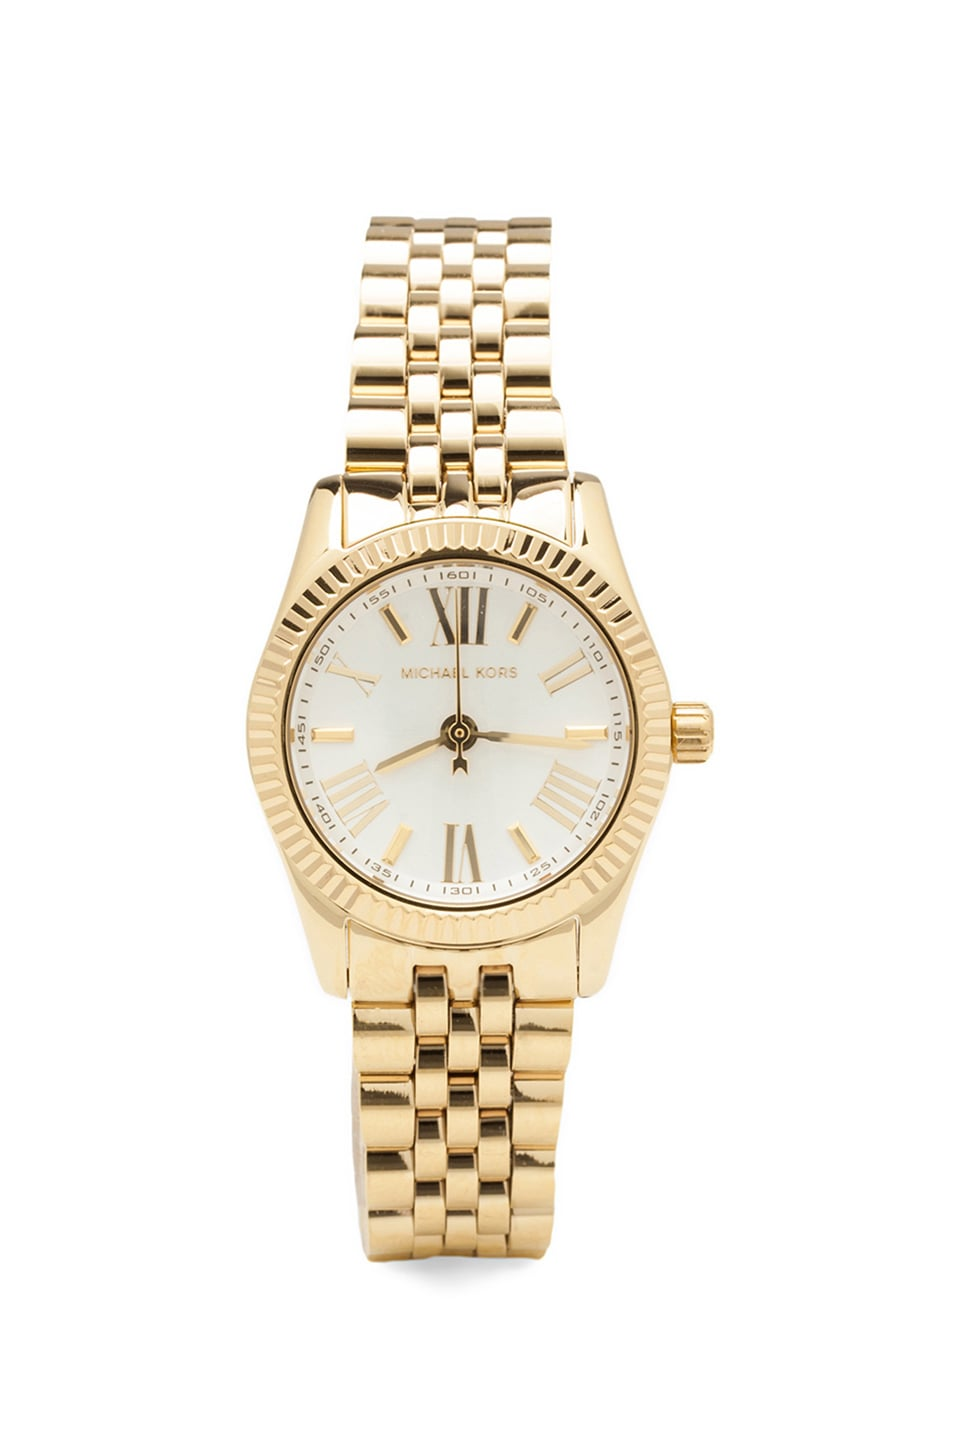 Michael Kors Petite Lexington in Gold